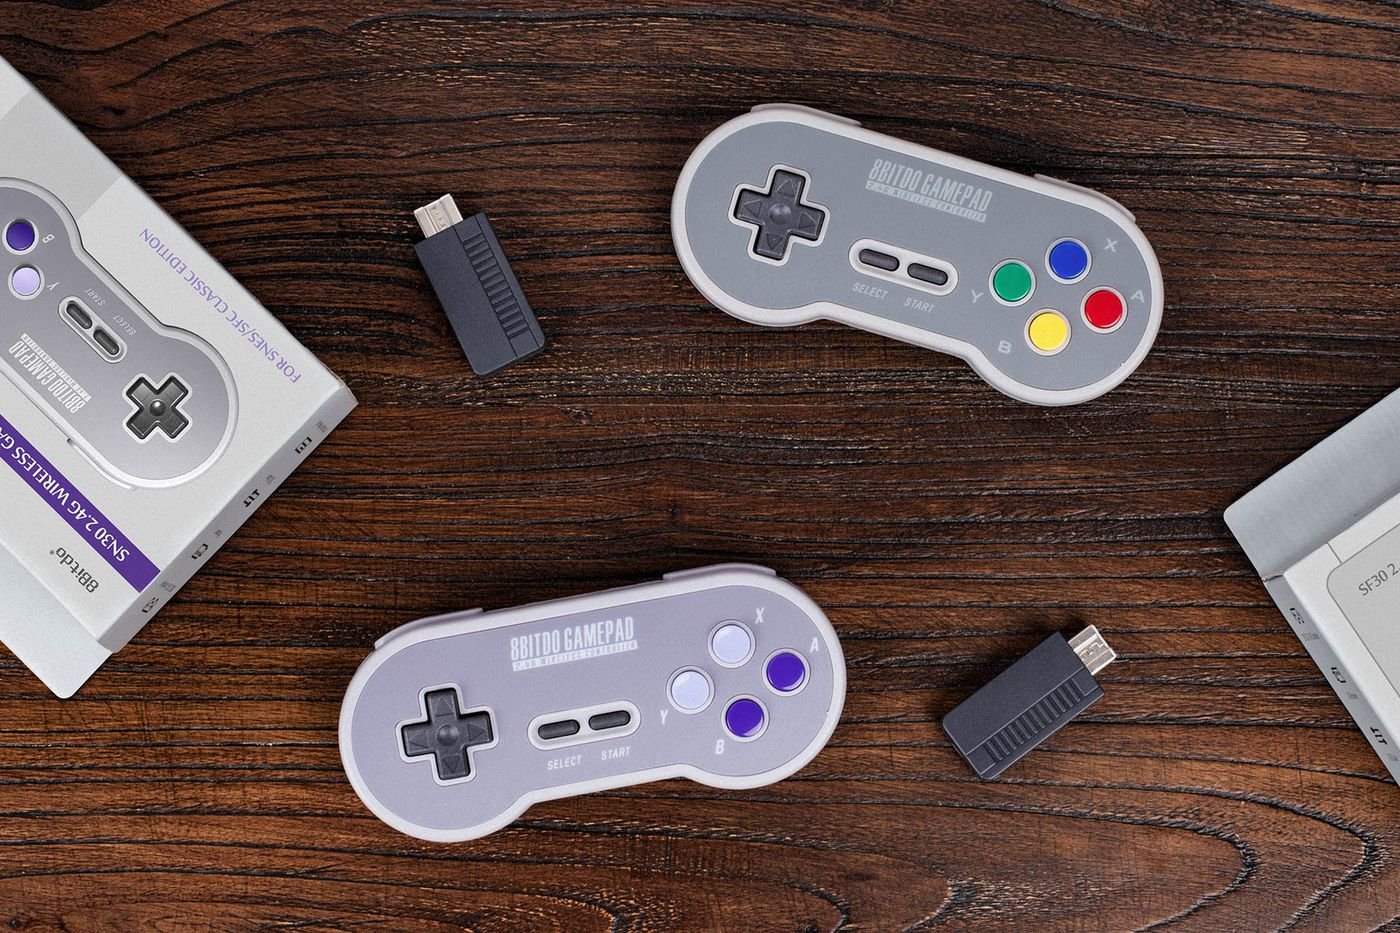 The SNES Classic is so much better with a wireless